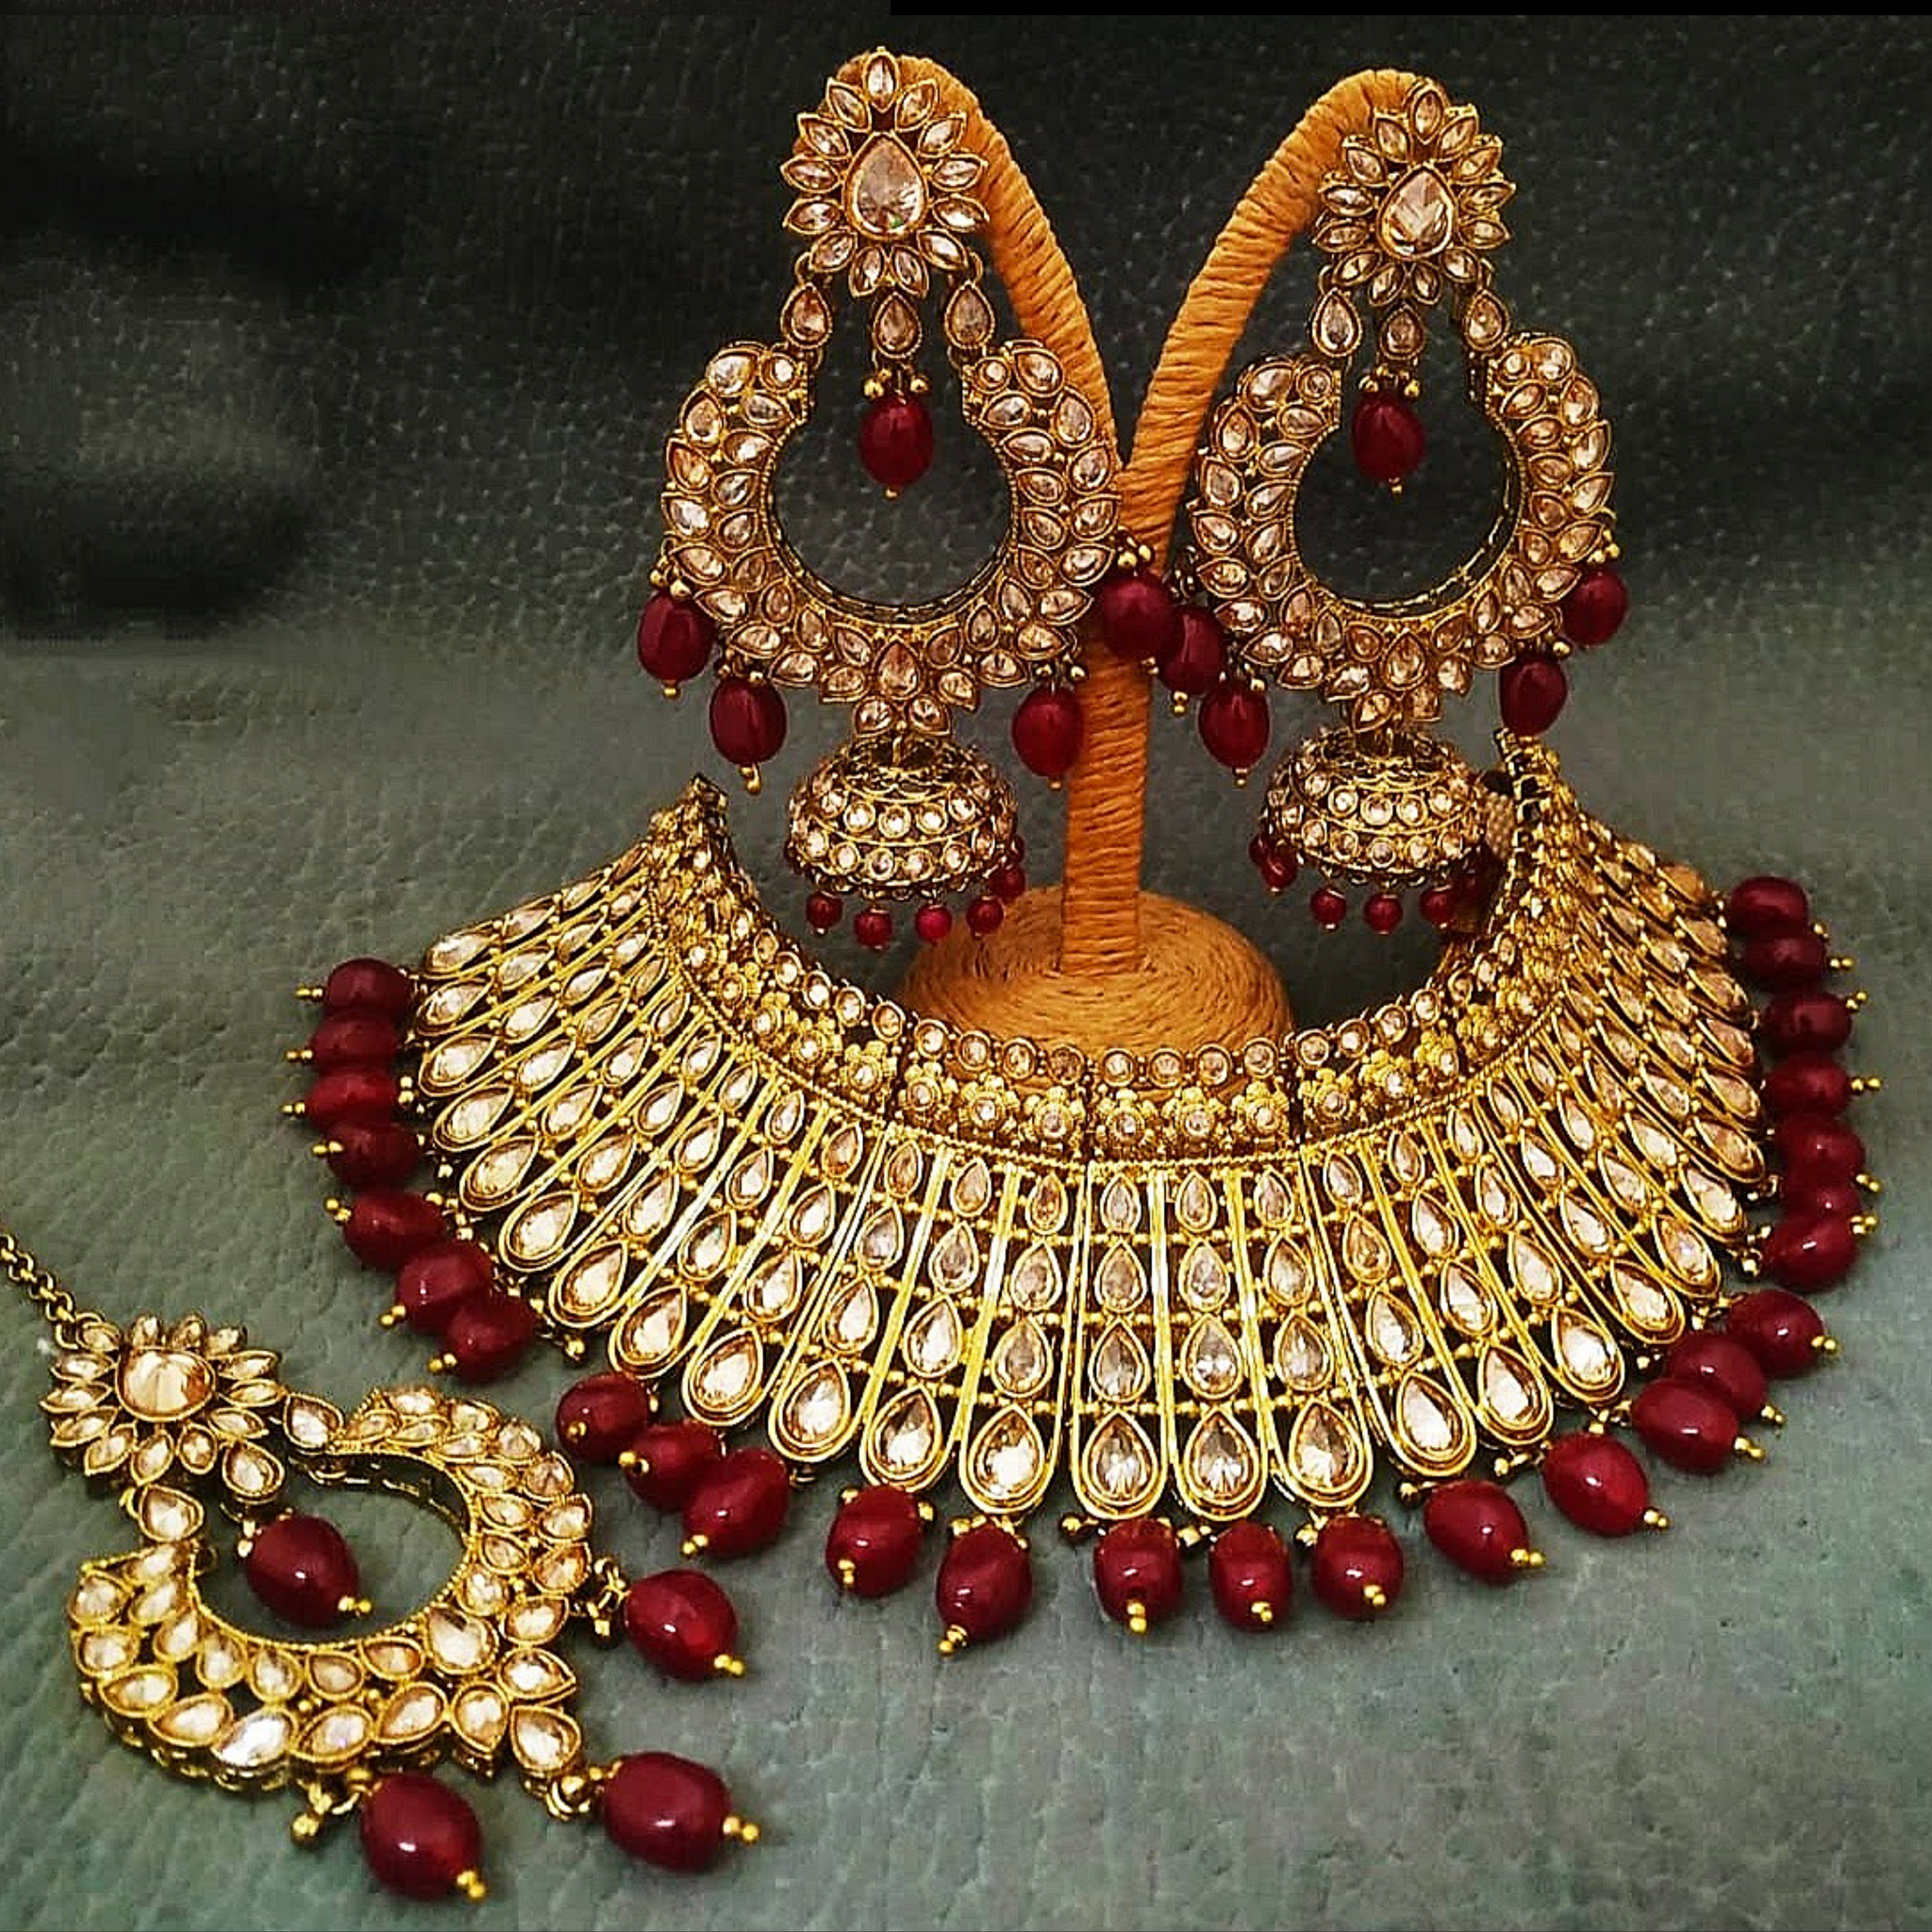 Kundan Choker Necklace Gold Plated Exclusive Design Bridal Jewellery Set